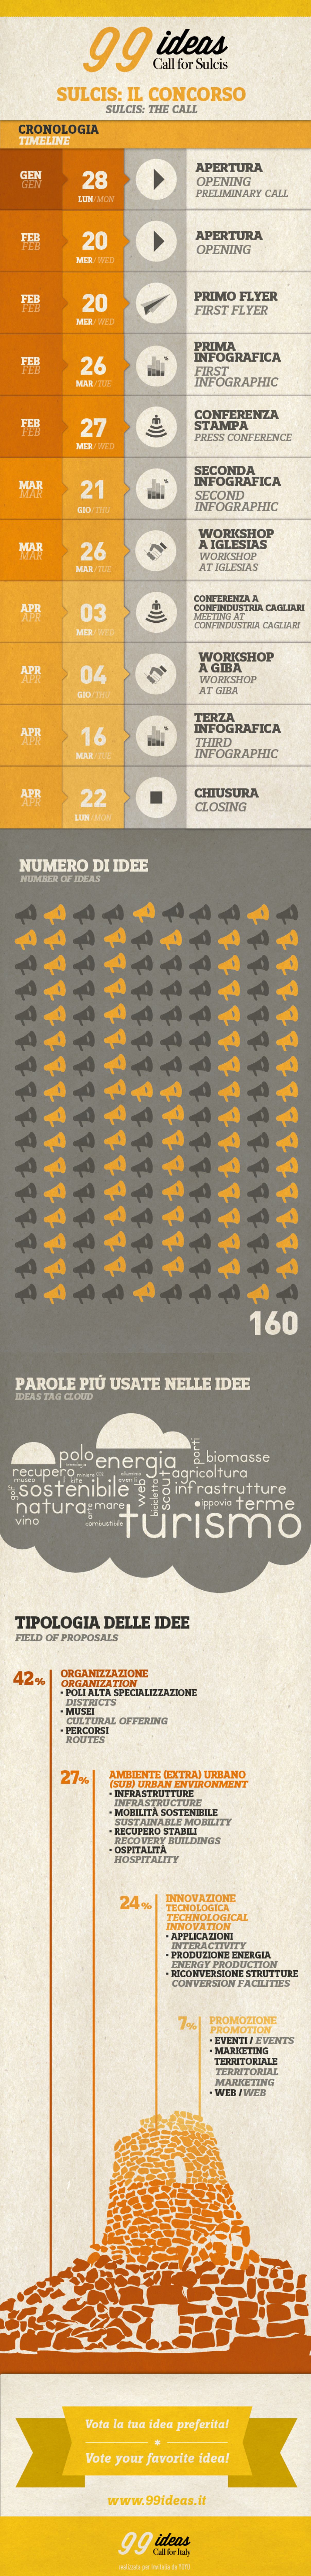 #99ideas Chiusura Call for Sulcis Infographic